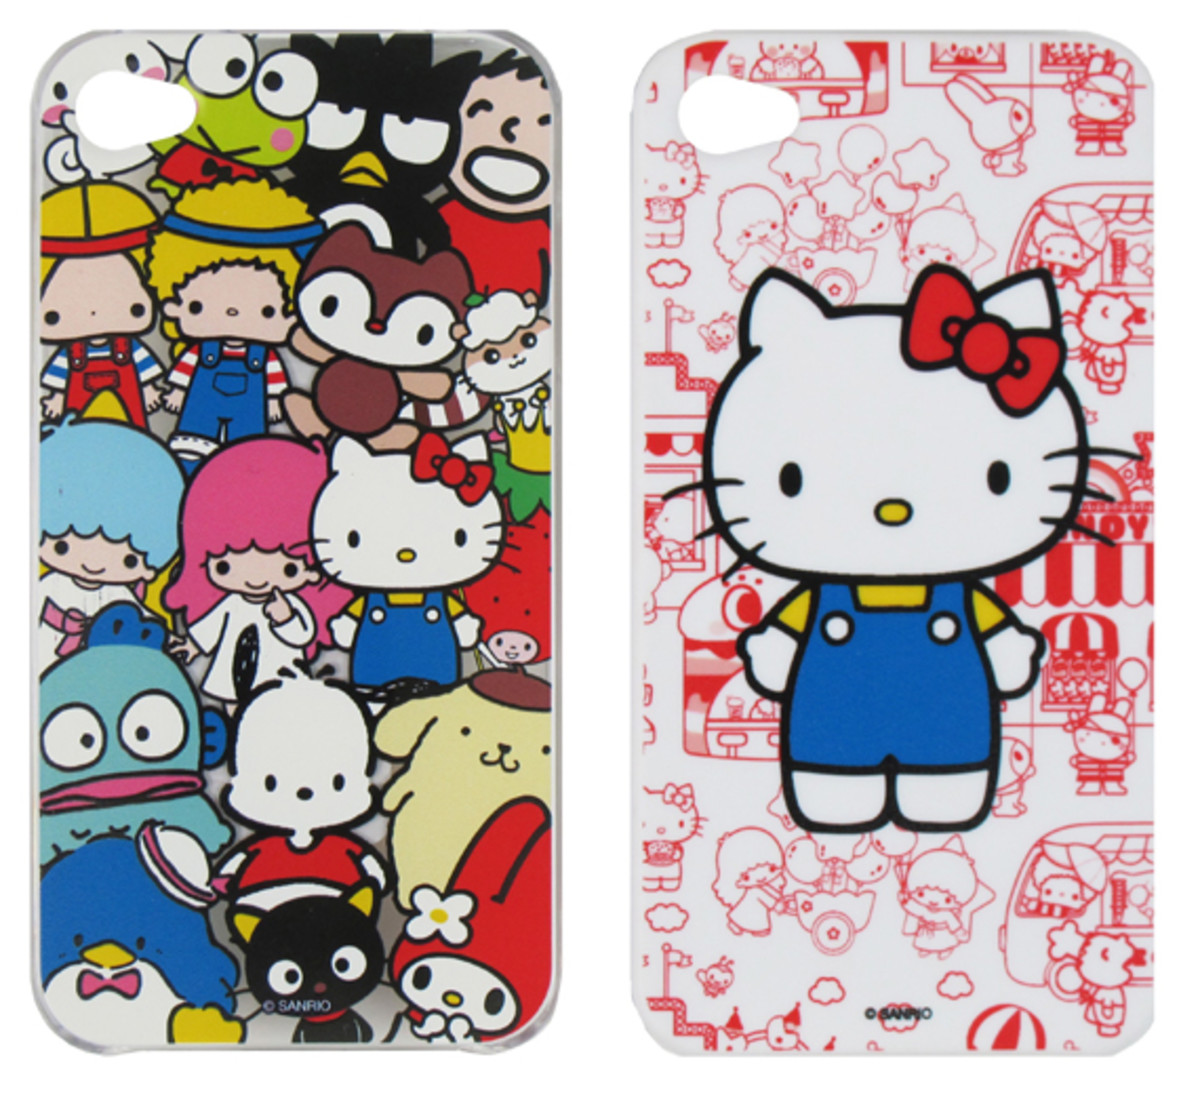 sanrio-small-gift-iphone-case